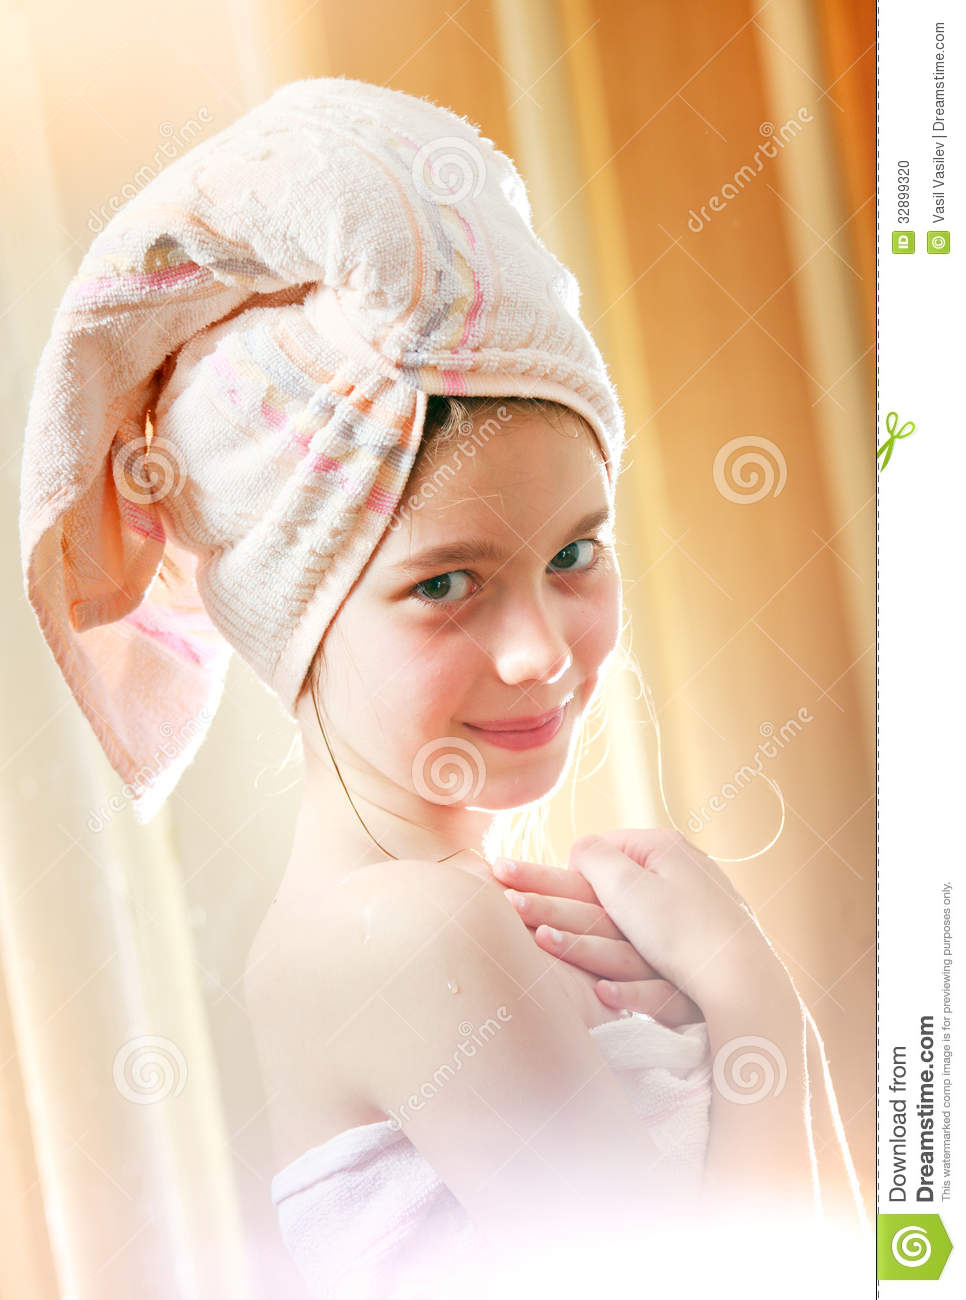 Young girls in towels hot girls wallpaper for Bathroom girls pic